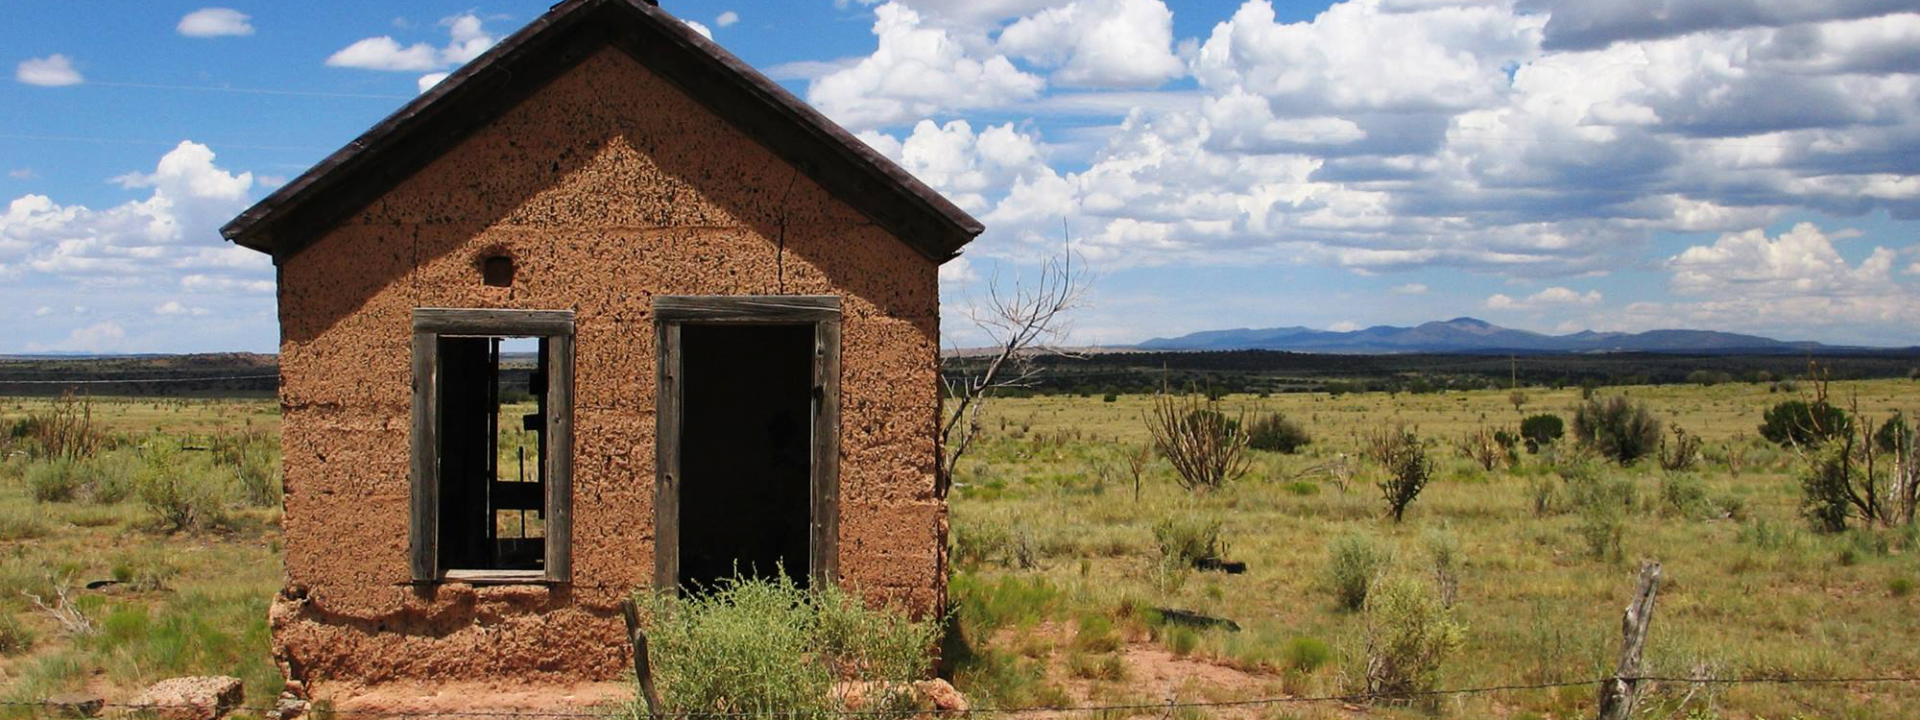 An abandoned house in the ghost town of Ancho, New Mexico